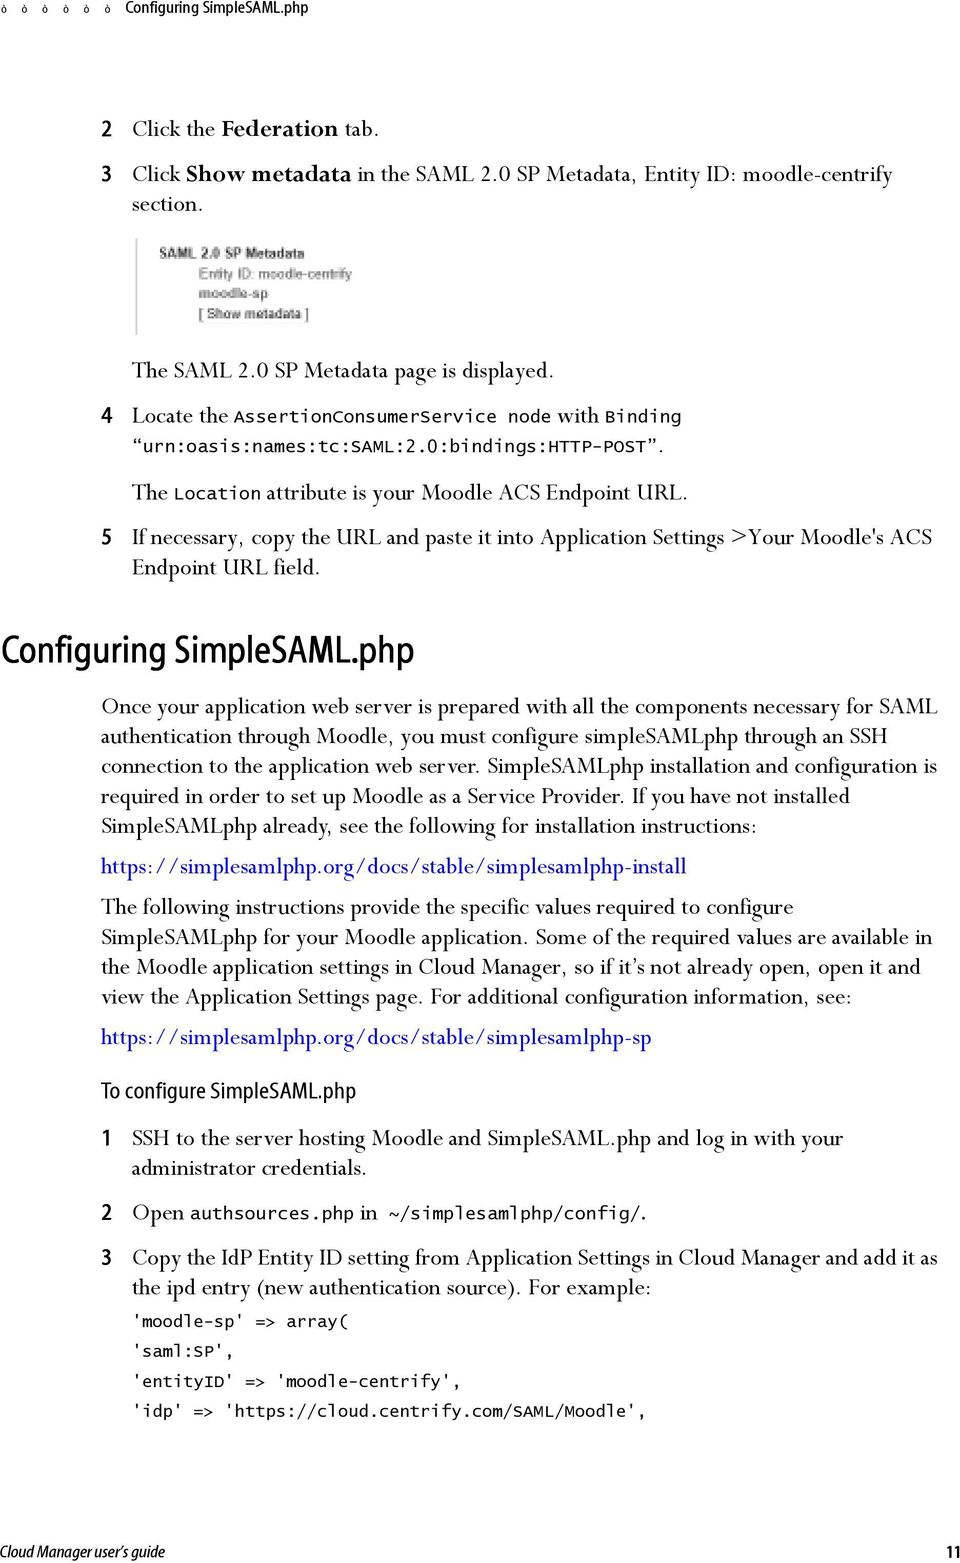 5 If necessary, copy the URL and paste it into Application Settings >Your Moodle's ACS Endpoint URL field. Configuring SimpleSAML.